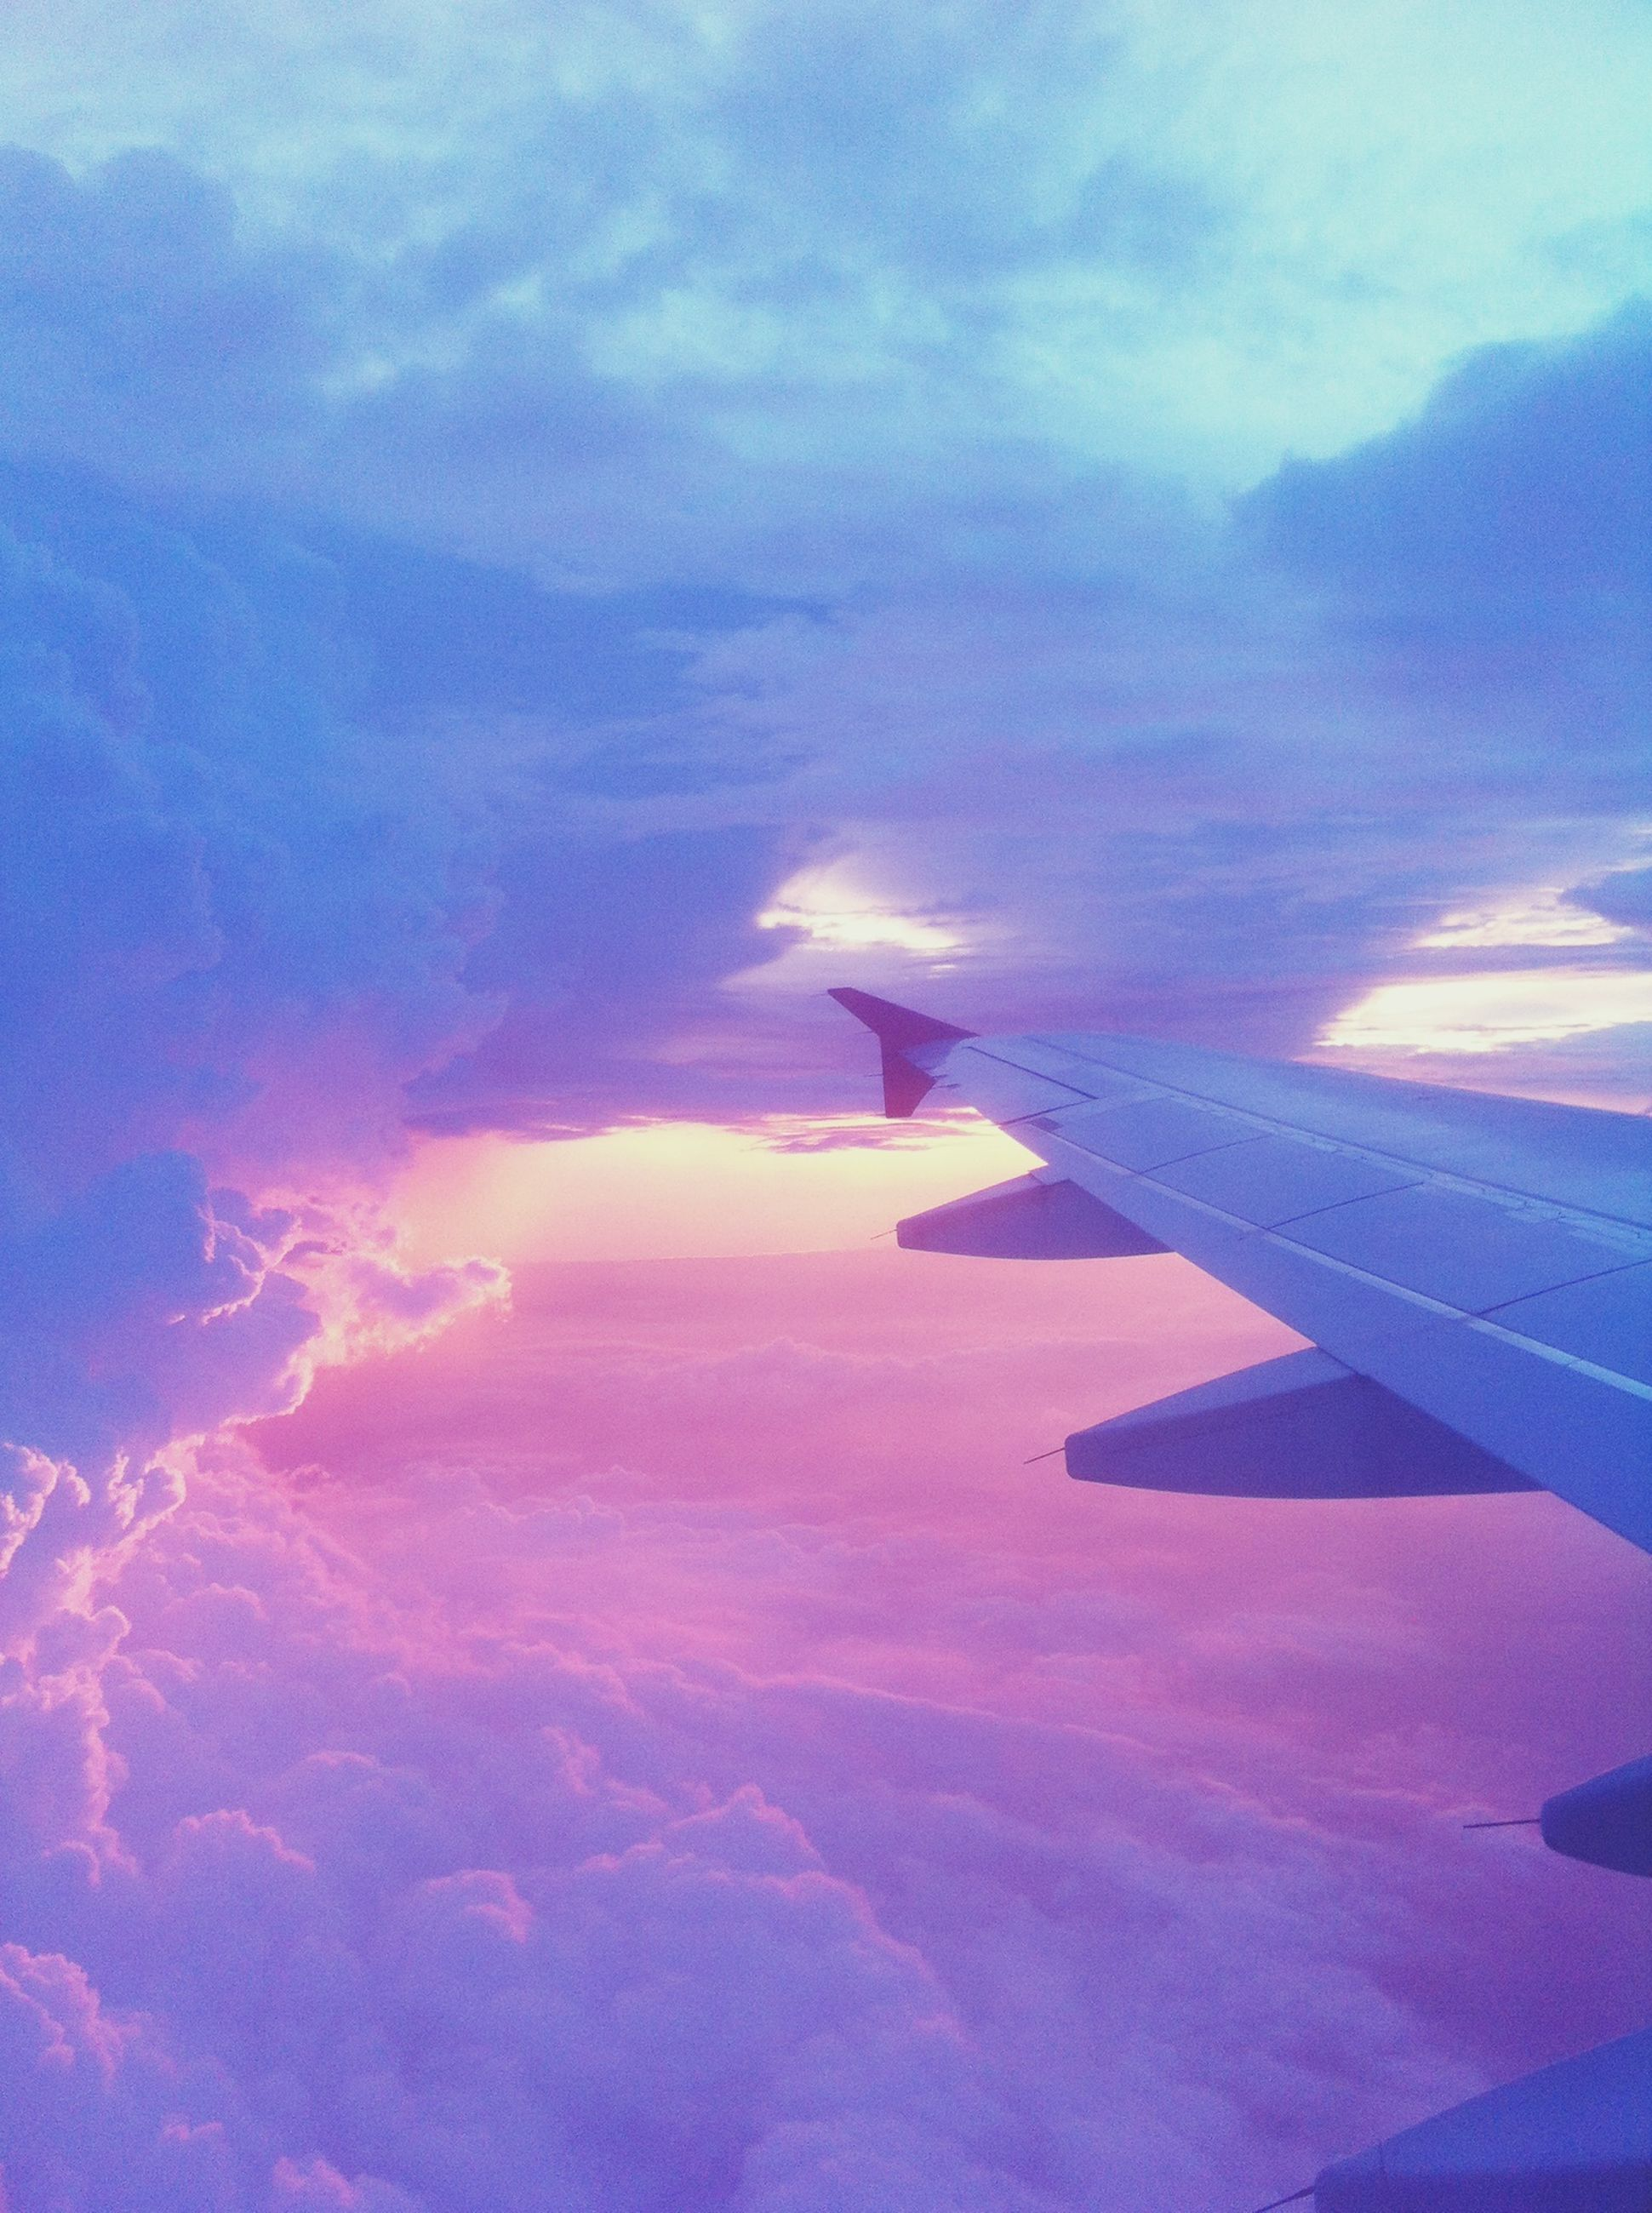 airplane, transportation, air vehicle, aircraft wing, sky, flying, mode of transport, cloud - sky, mid-air, blue, travel, part of, on the move, cloud, cropped, aerial view, scenics, journey, beauty in nature, nature